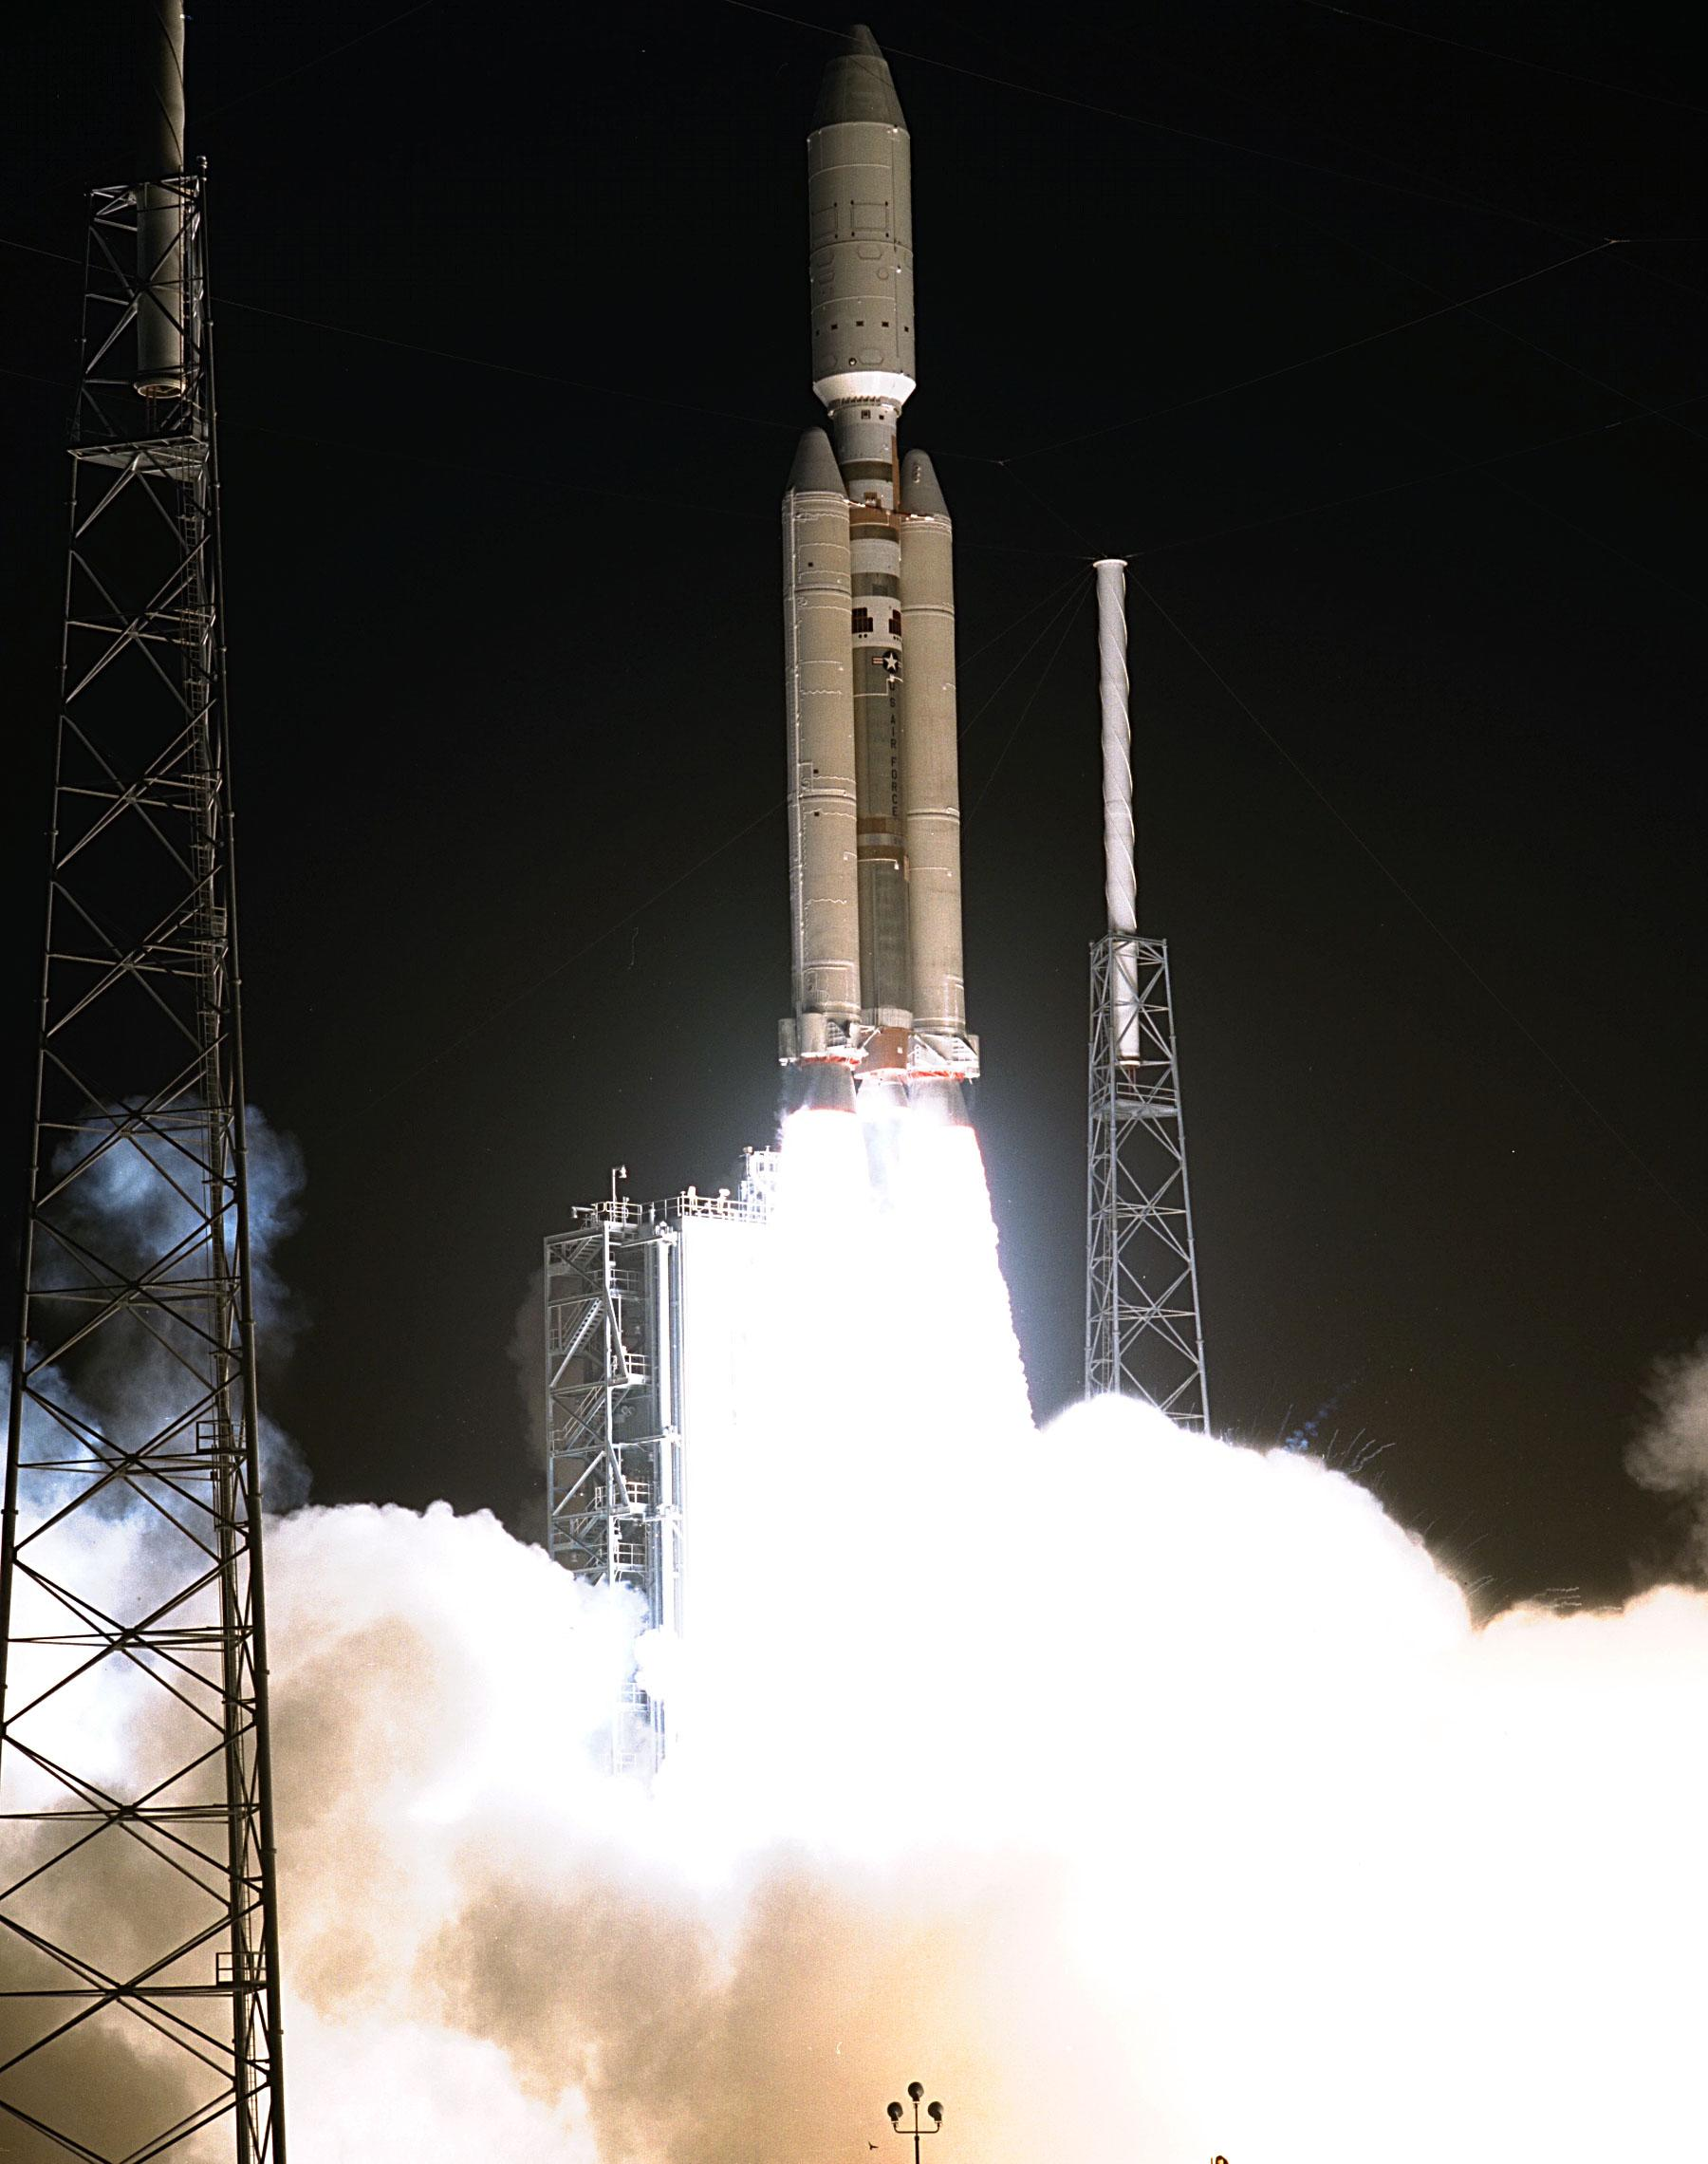 Space in Images - 2004 - 06 - Launch of Cassini-Huygens